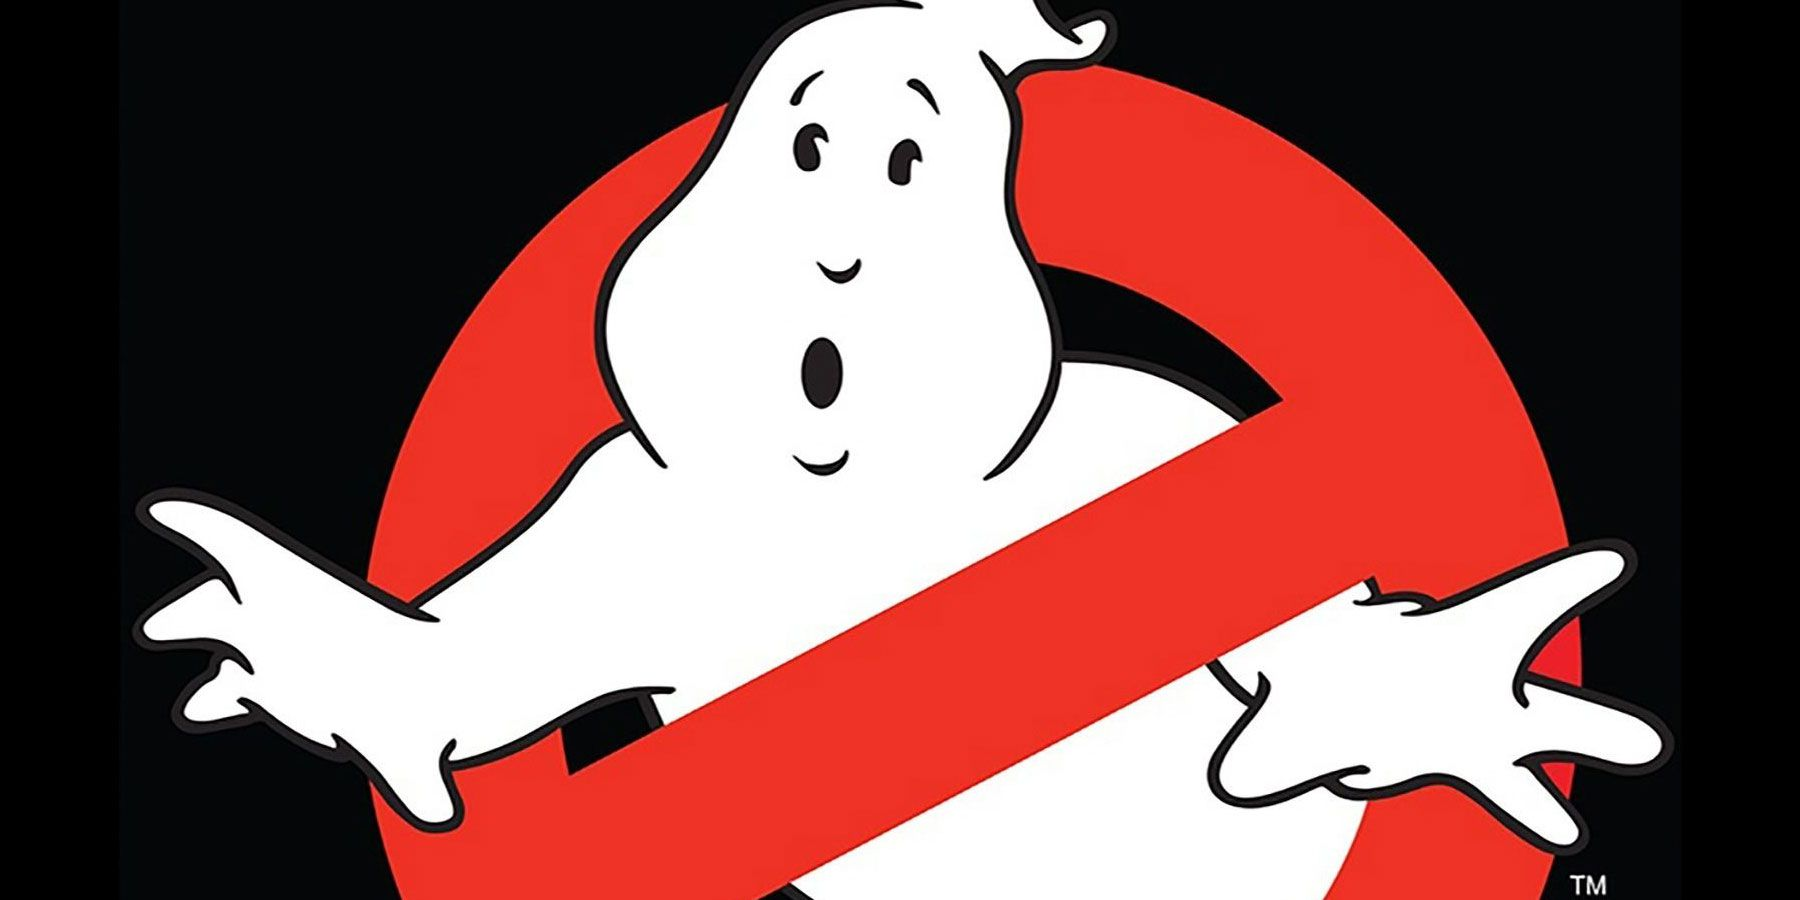 Ghostbusters 2020's Actual Title Reportedly Ghostbusters: Afterlife